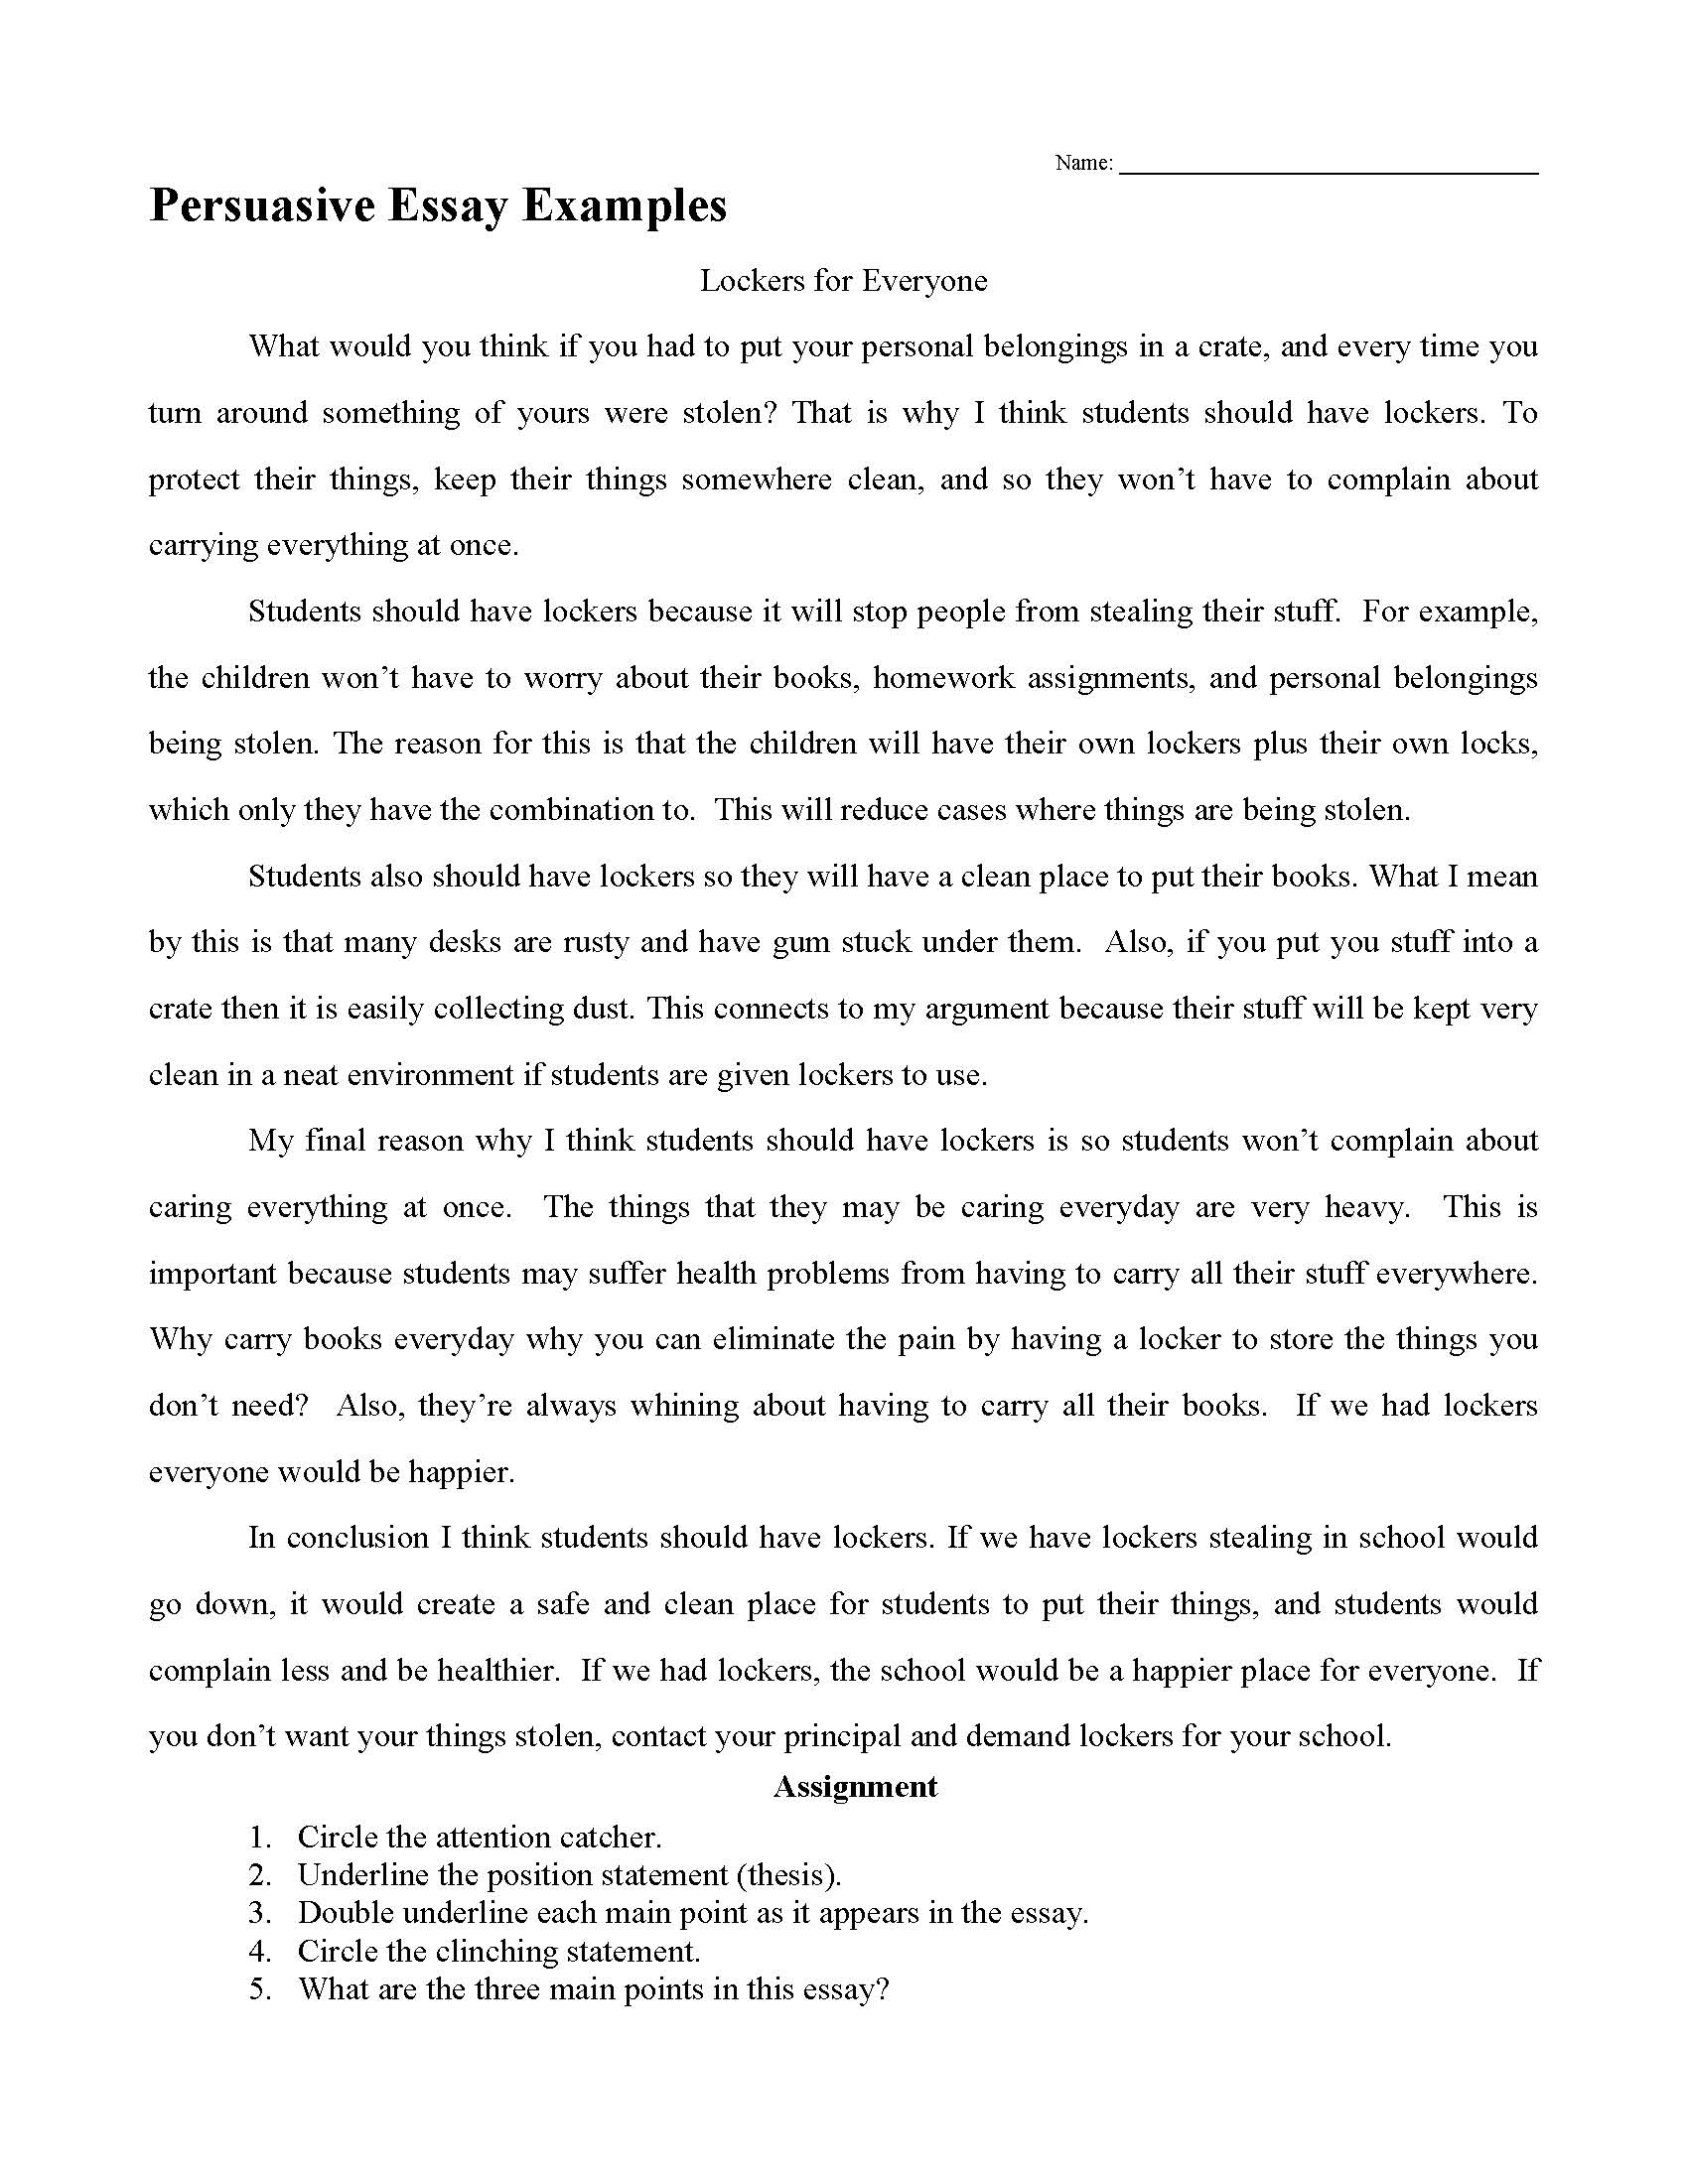 011 Middle School Science Fair Research Paper Template Persuasive Essay Examples Frightening Full